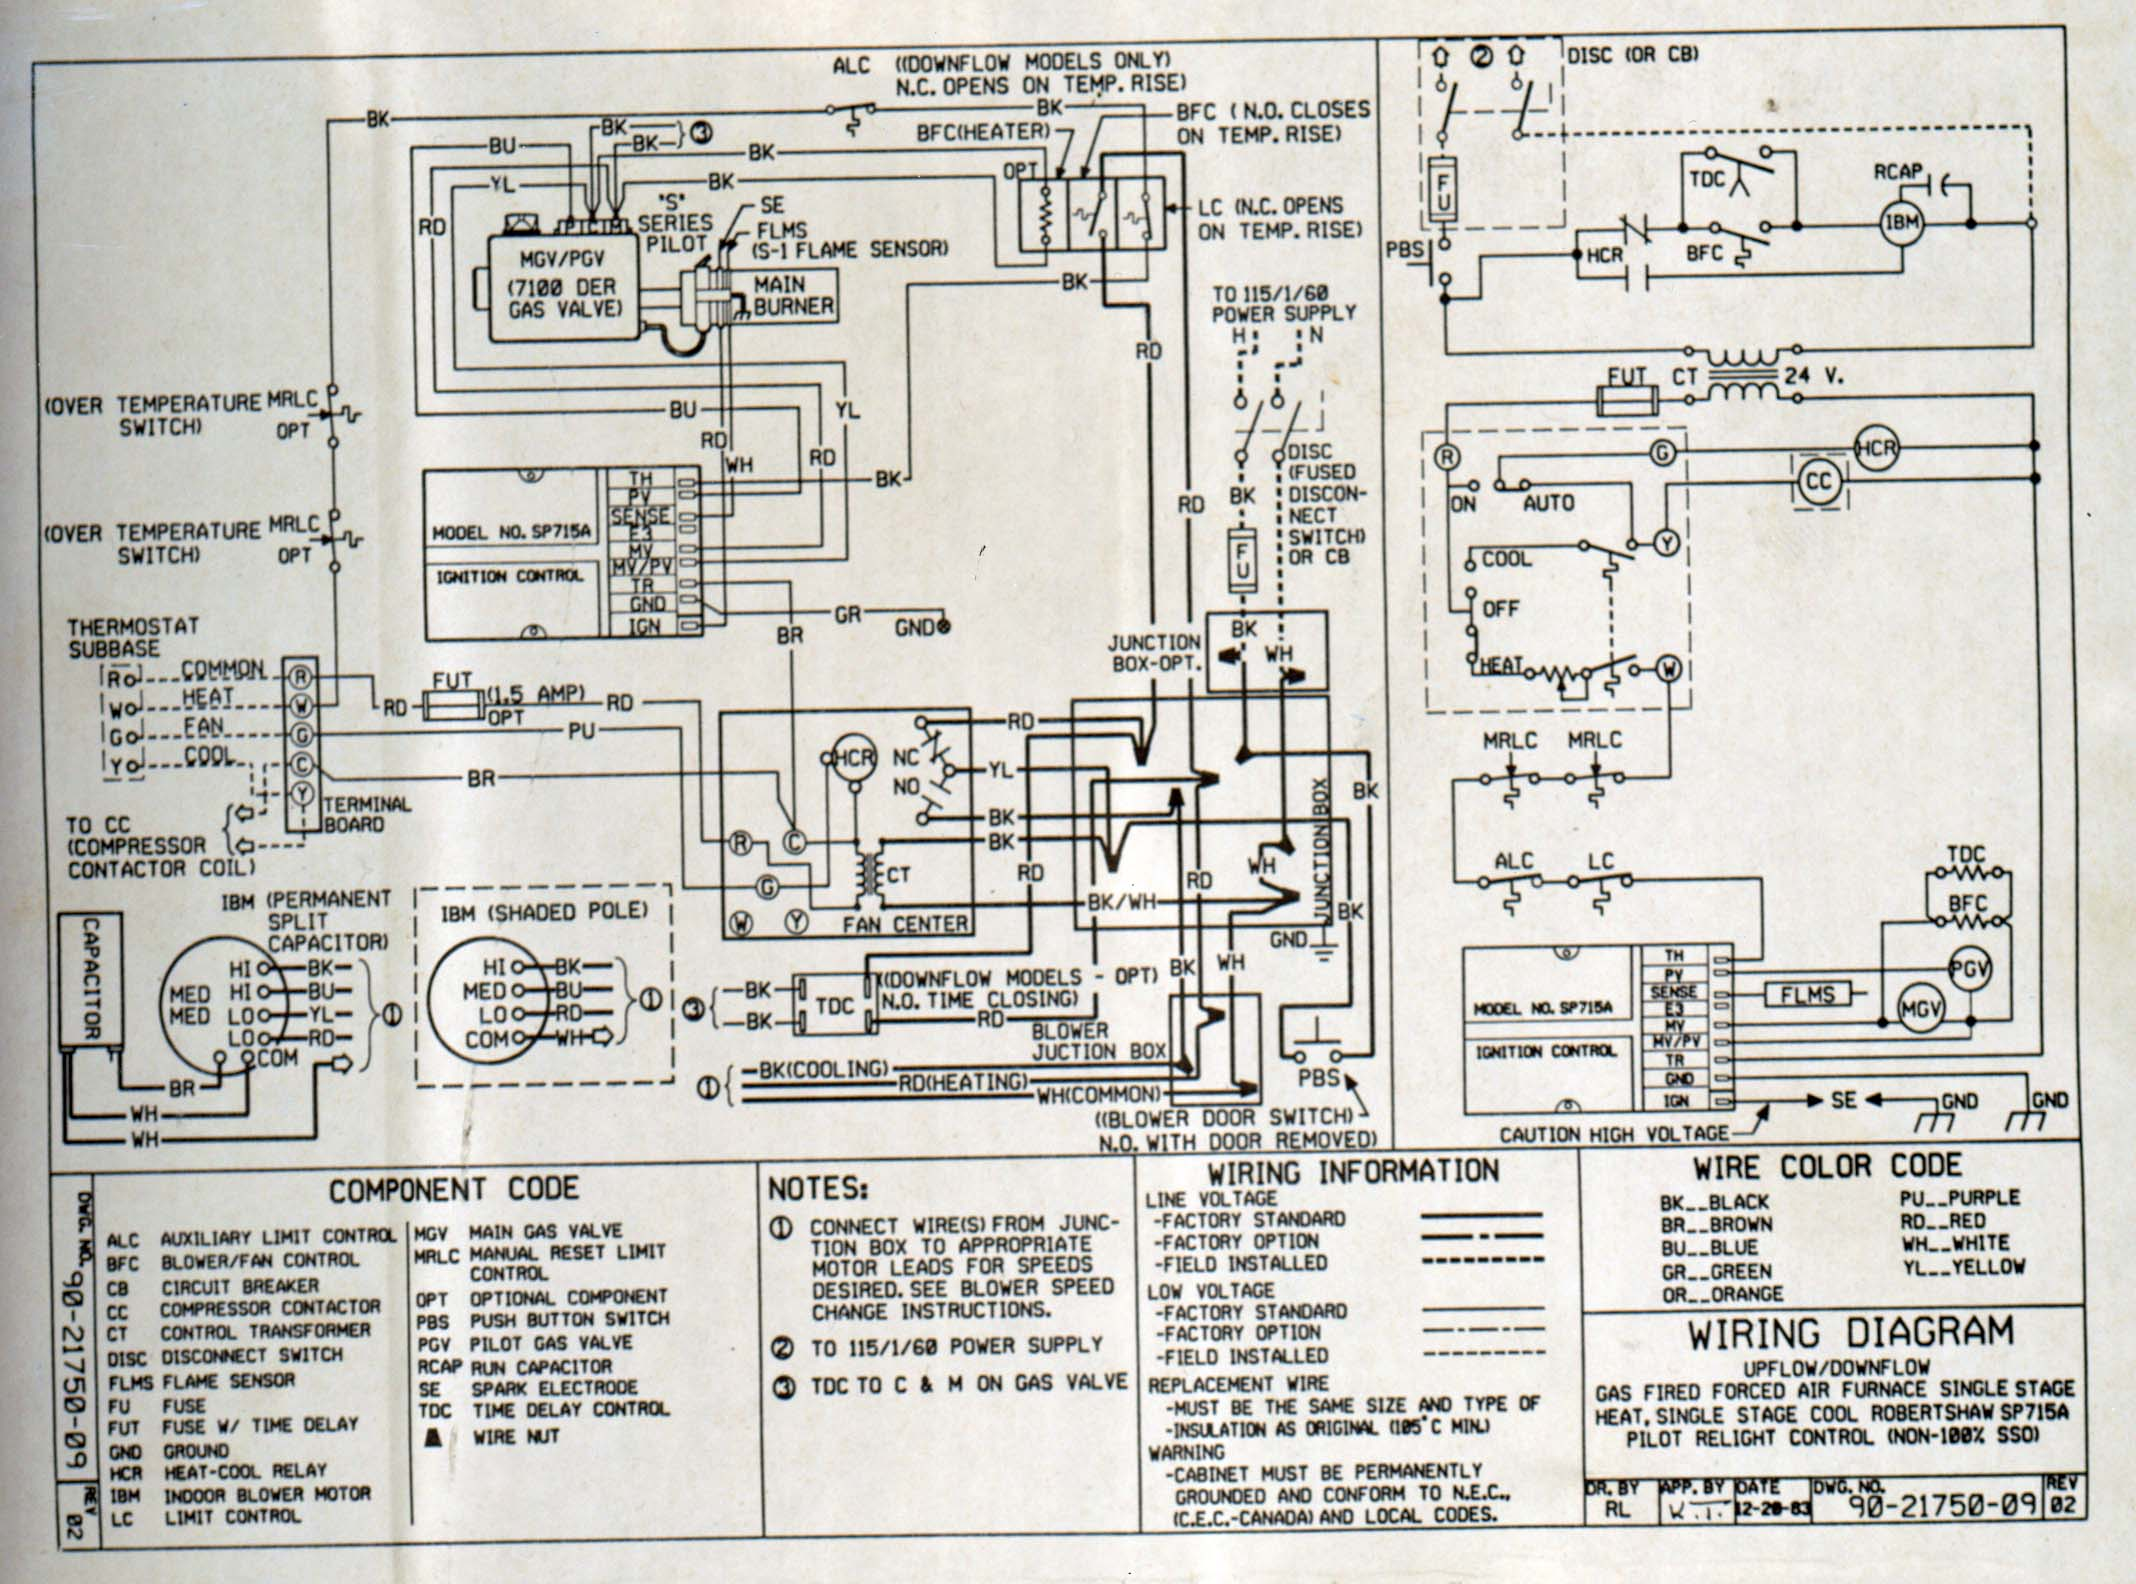 goodman air handler wiring diagram the wiring diagram amana heat pump wiring diagram vidim wiring diagram wiring diagram